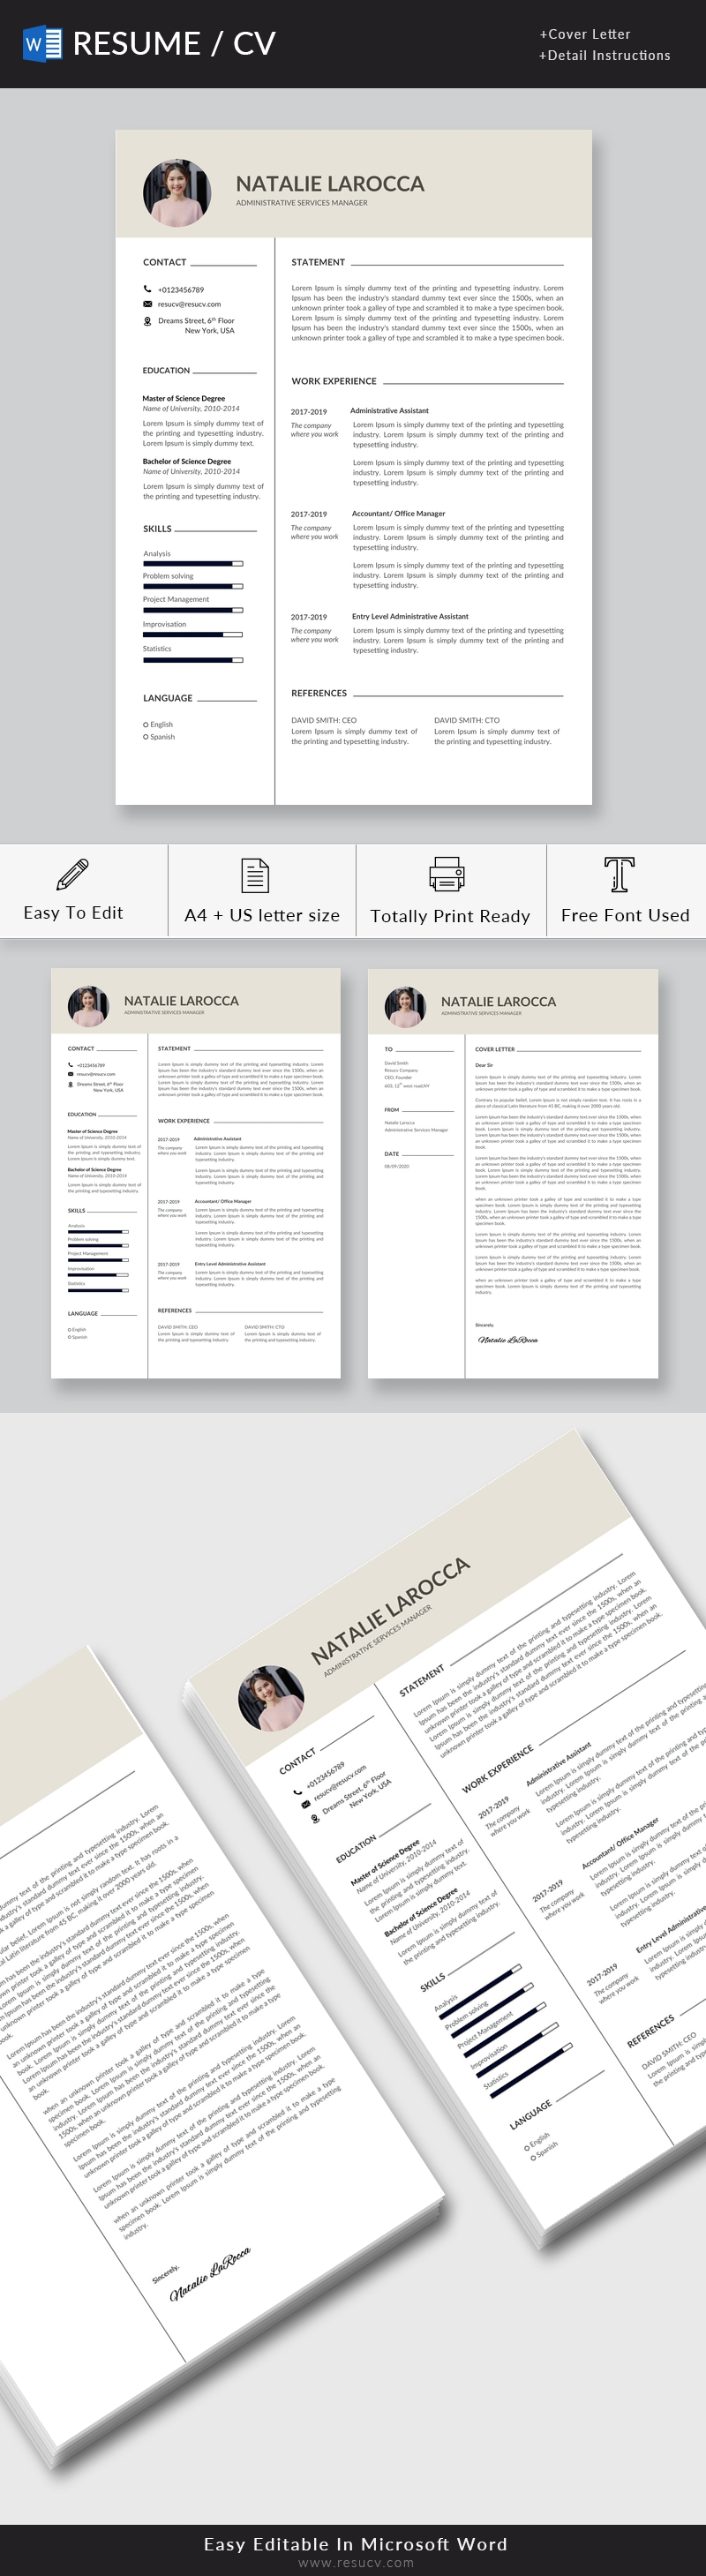 Clean Administrative Services Manager Resume Template, Nice Resume, Professional and Creative Design